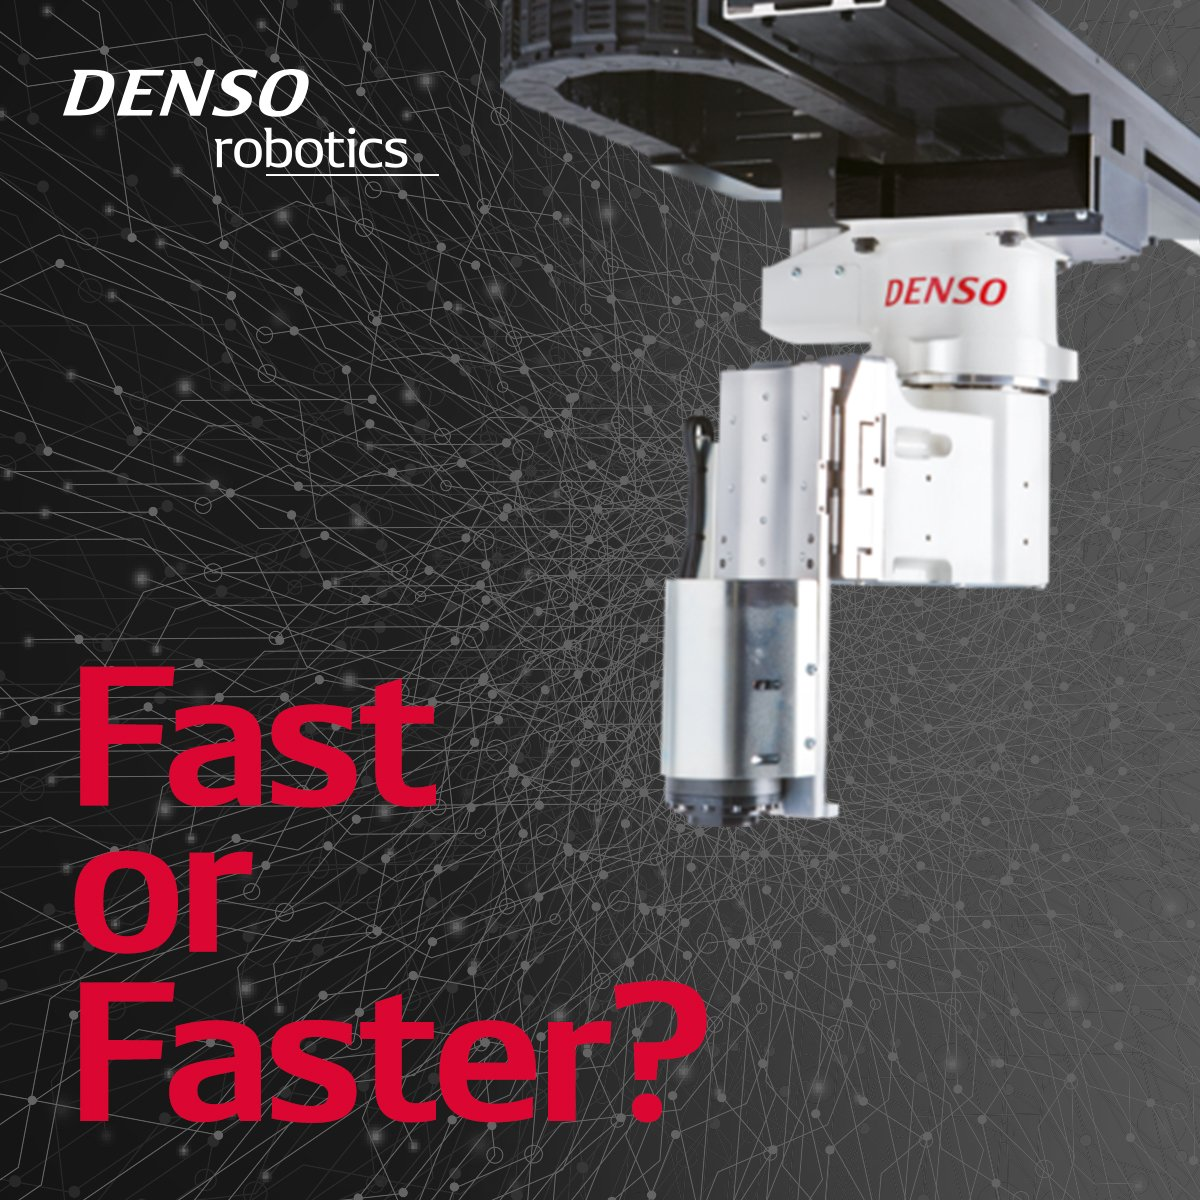 DENSO Robotics - @DENSORobotics Twitter Profile and